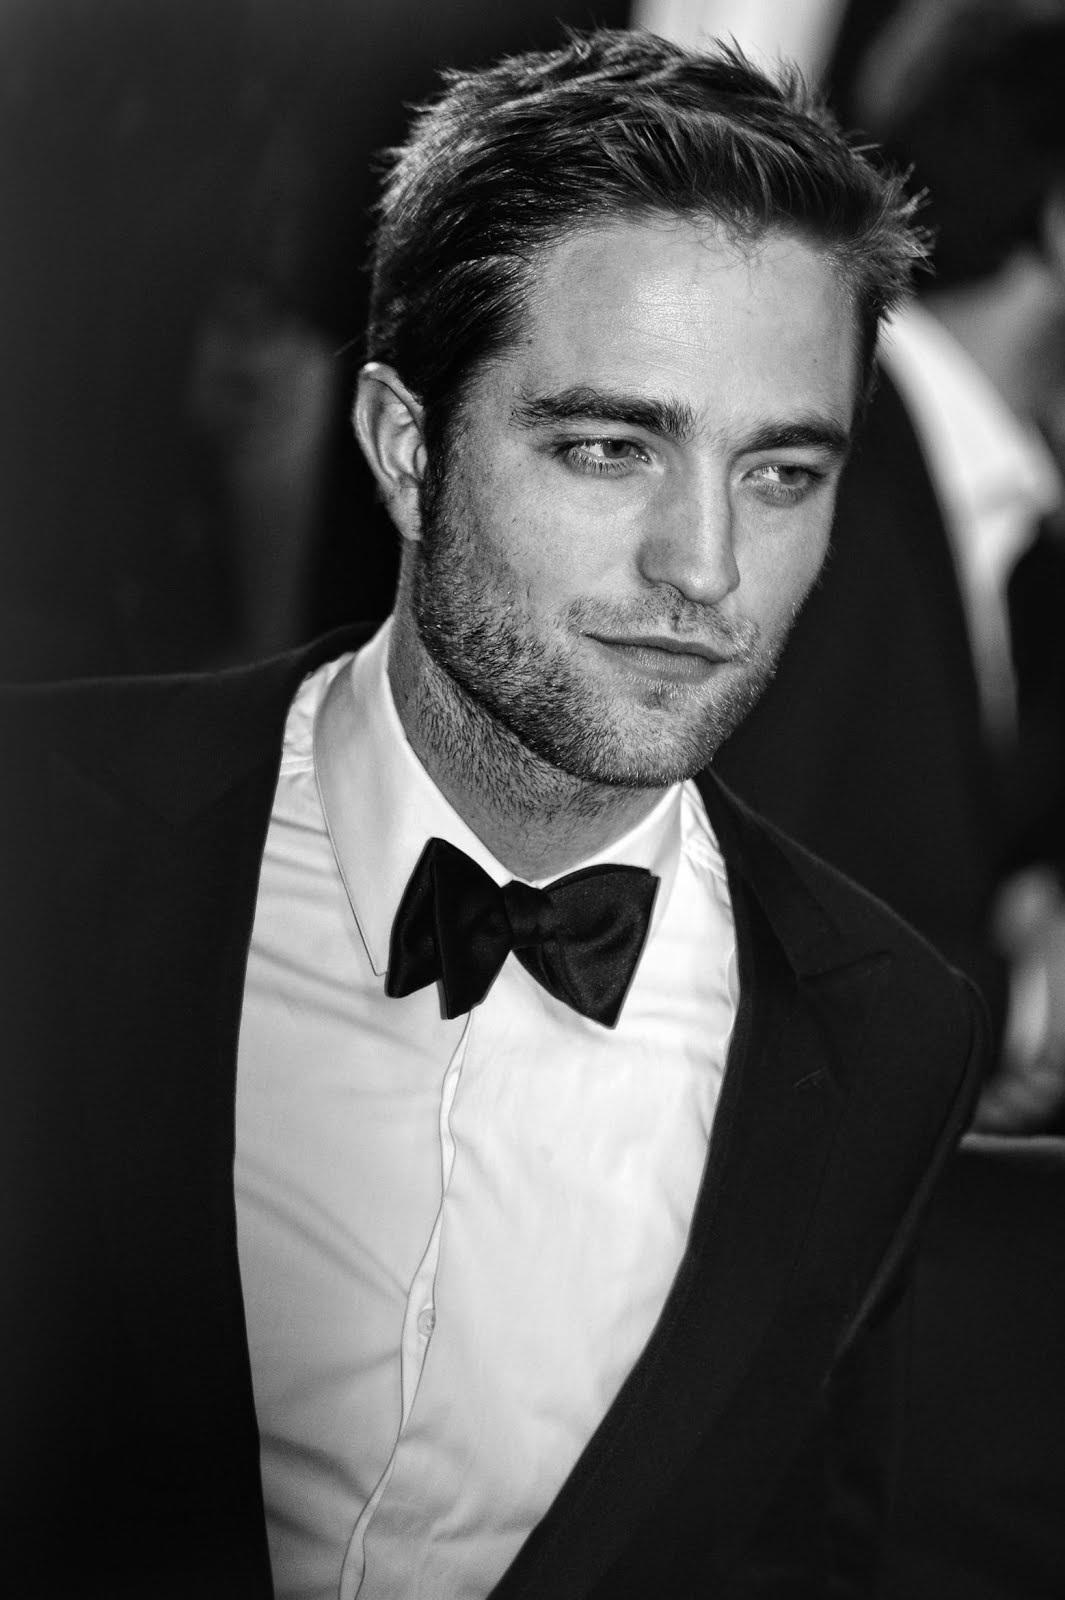 Robert pattinson nouvelle g rie dior on adore princesse acidul e - Robert pattinson nouvelle coupe ...